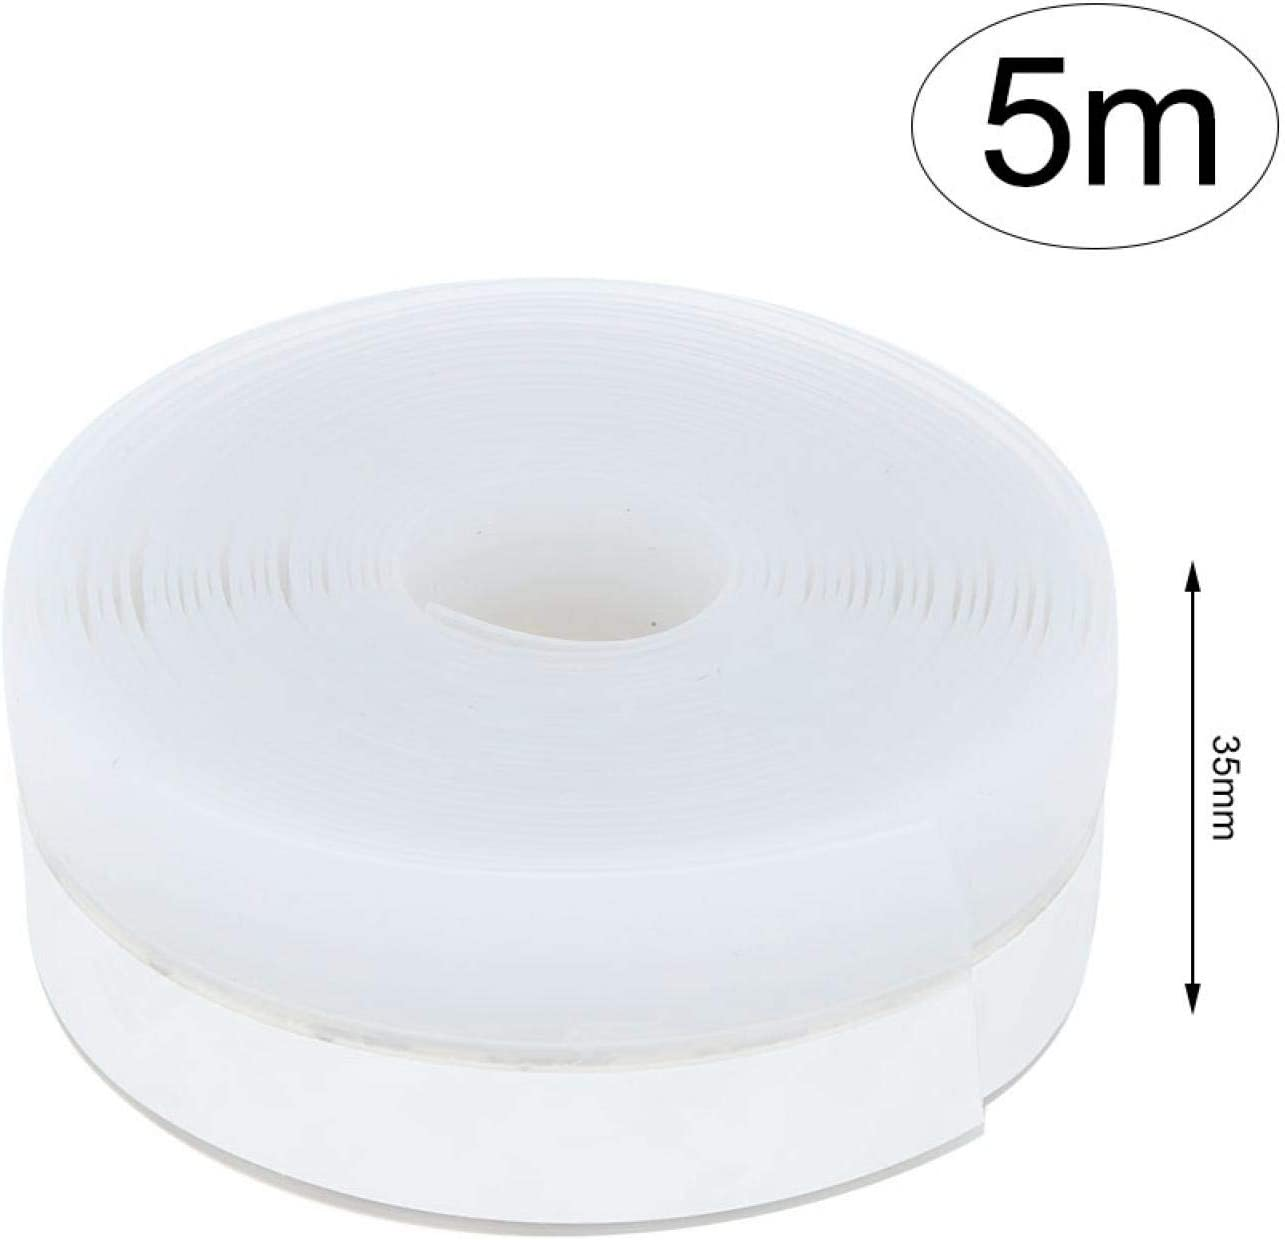 for Sliding Doors DAUERHAFT Ultra-Thin and Ultra-Soft Self Adhesive Draught Excluder Stick Firmly Silicone Seal Soundproof for Cupboards 35mm5m White//Beige Random